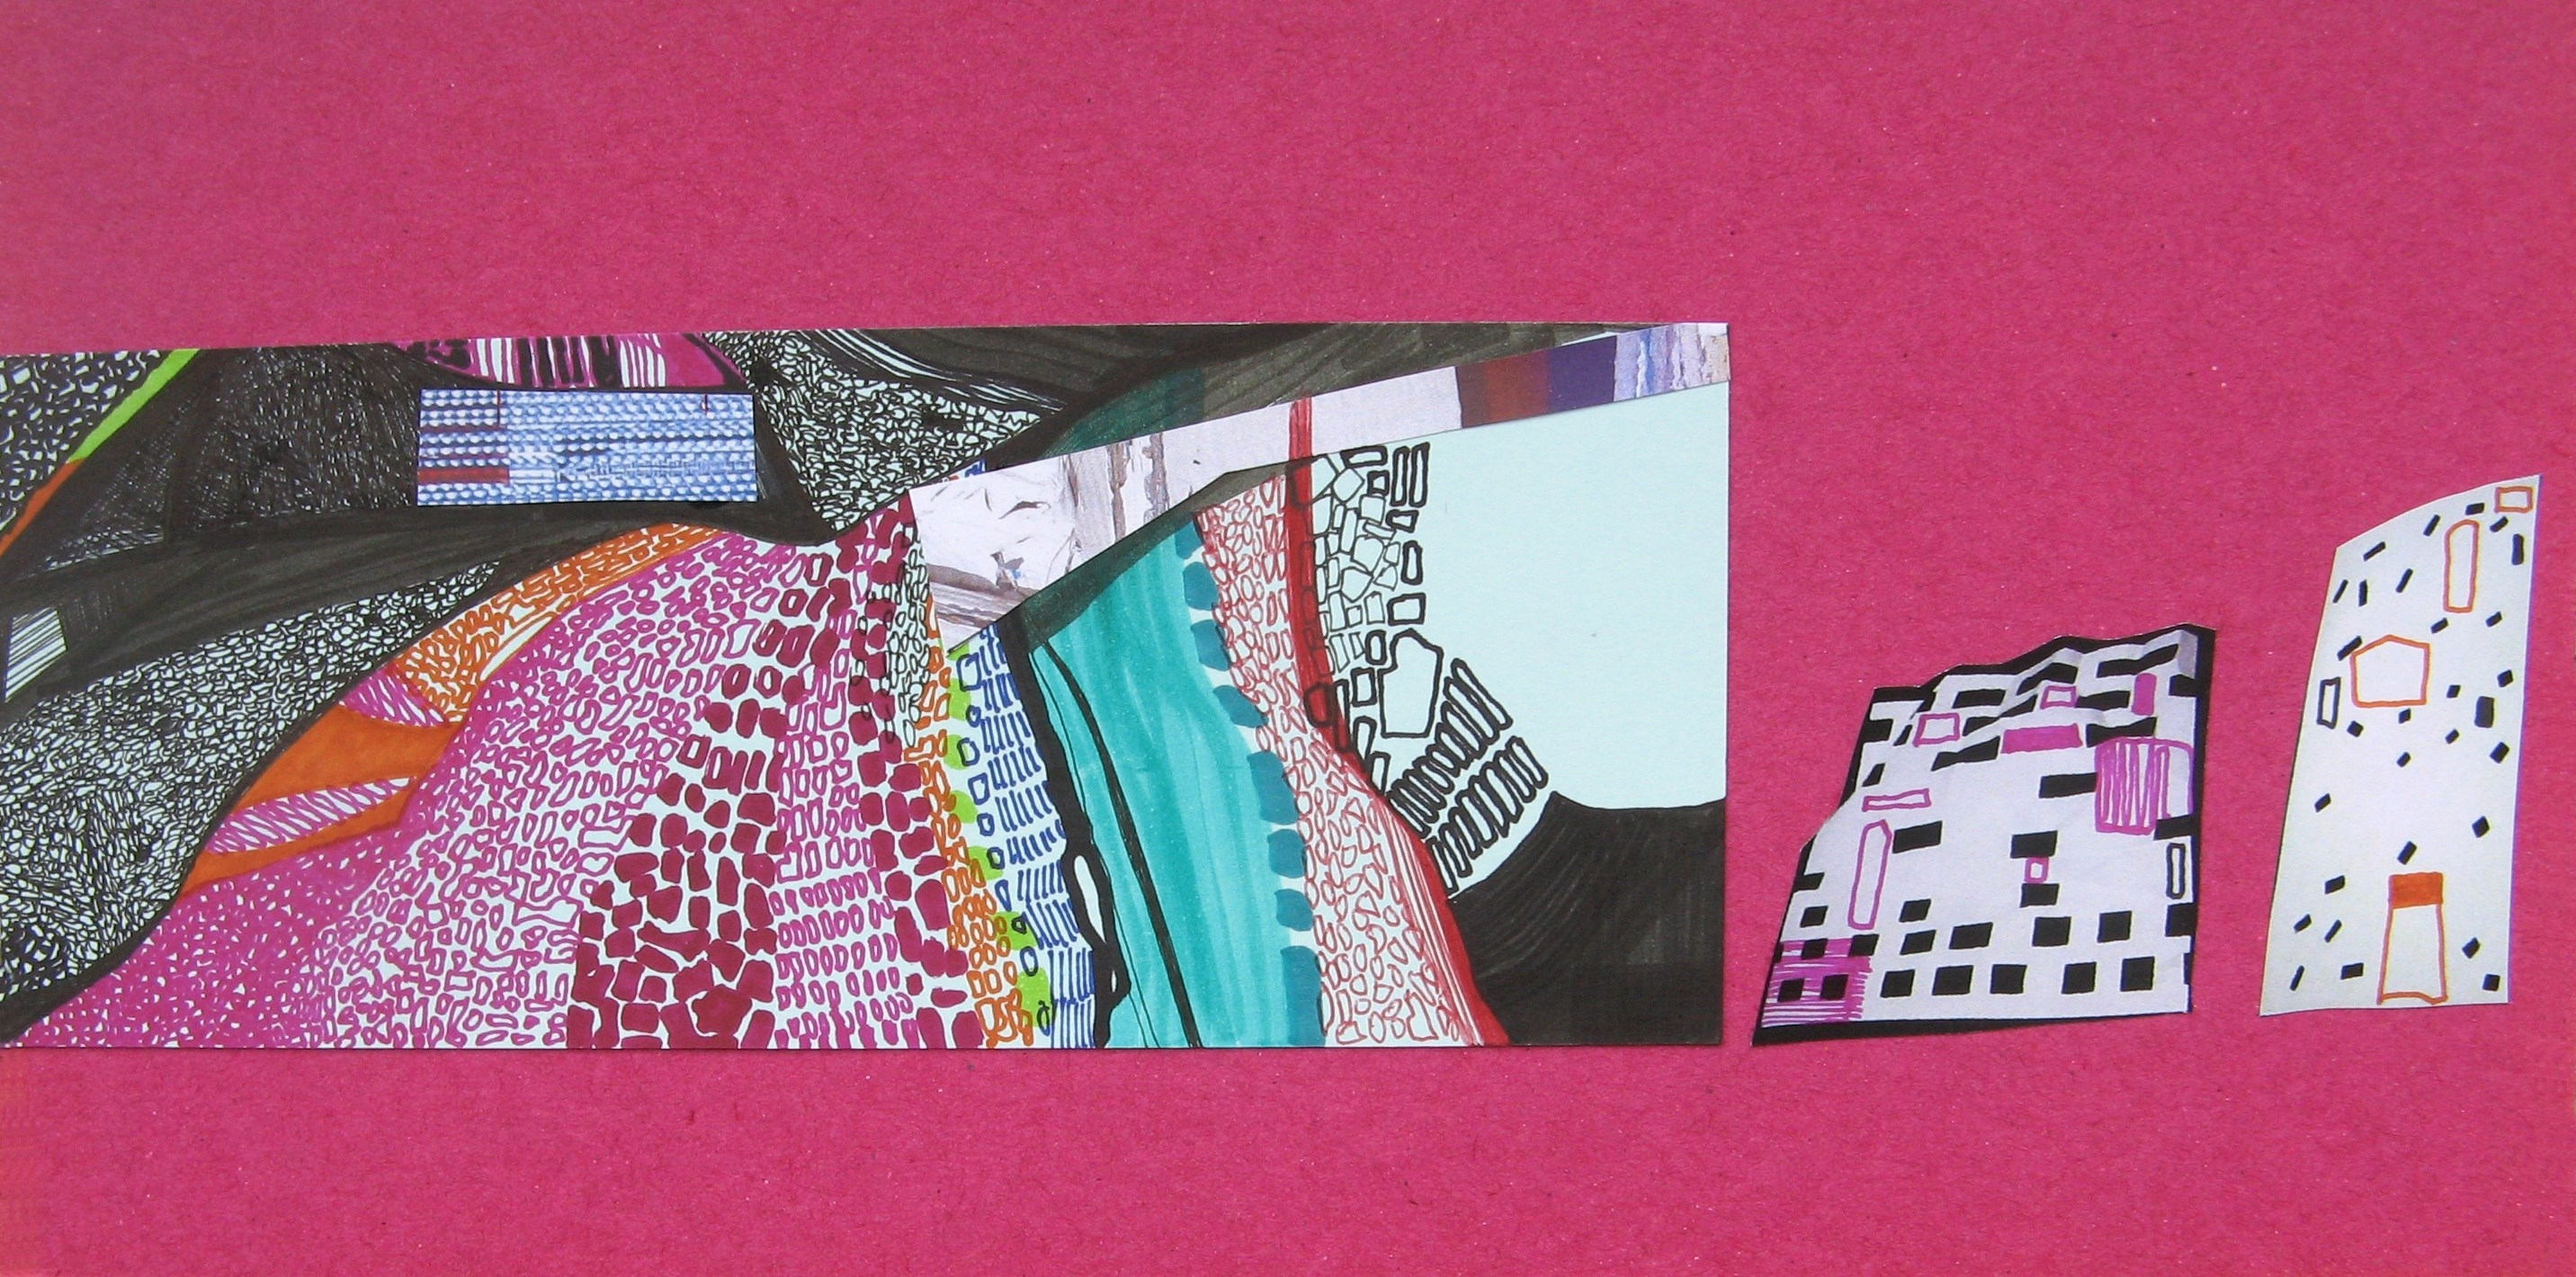 da Série Houses, several corners of the world, #62 de 70, original Collage Drawing and Illustration by Ana Pais Oliveira